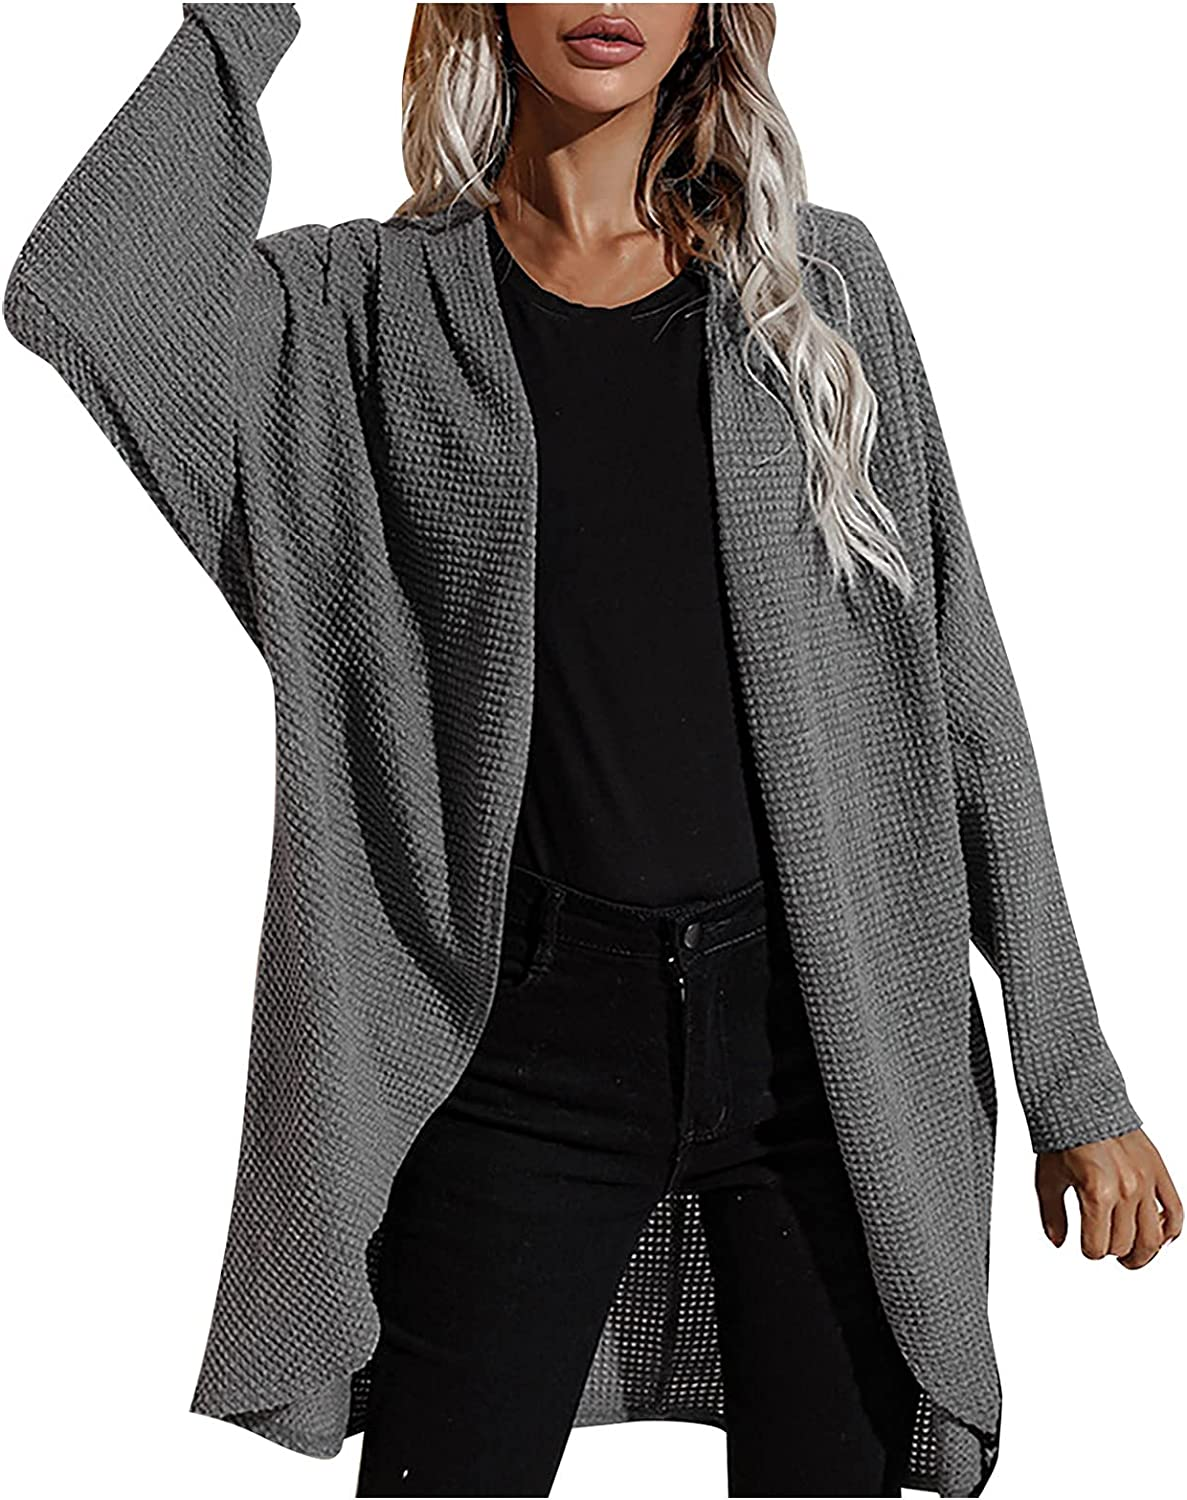 Womens Long Sleeve Open Front Cardigans Chunky Knit Casual Lightweight Sweaters Outwear with Pockets